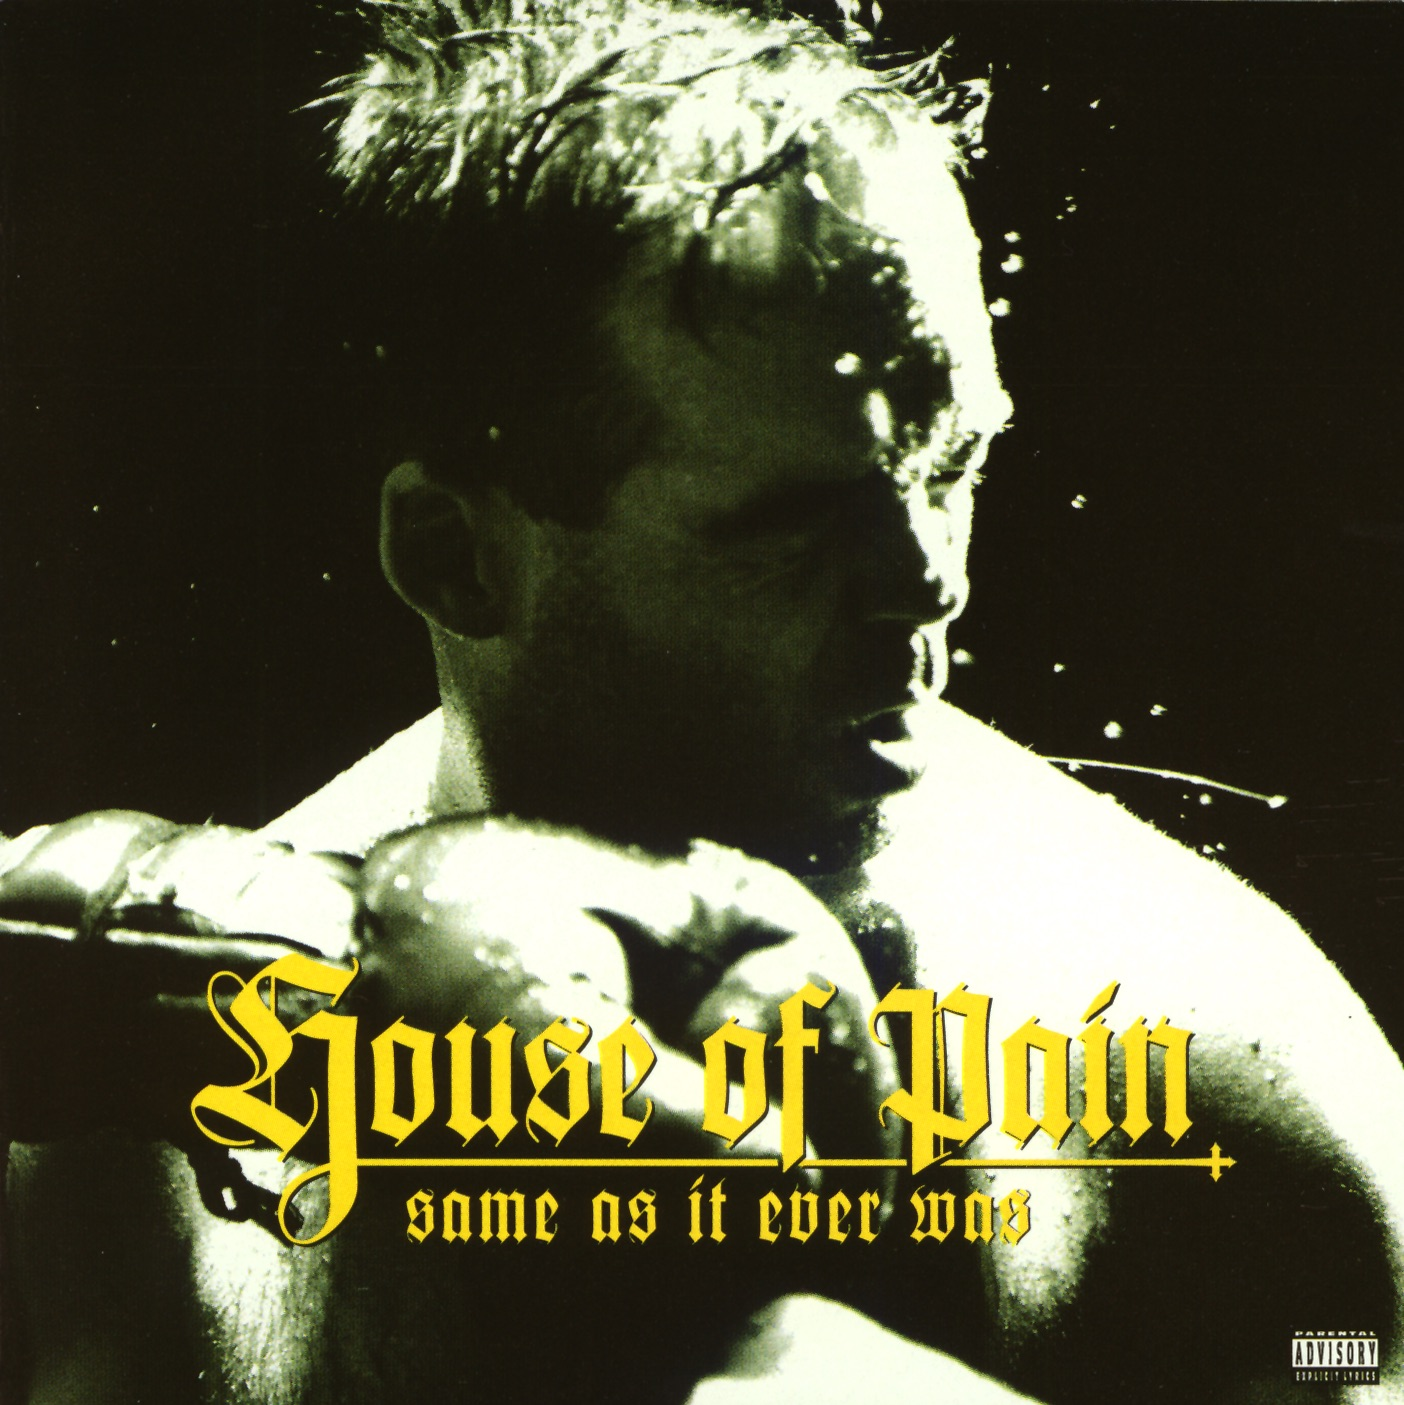 I'm a Swing It by House Of Pain